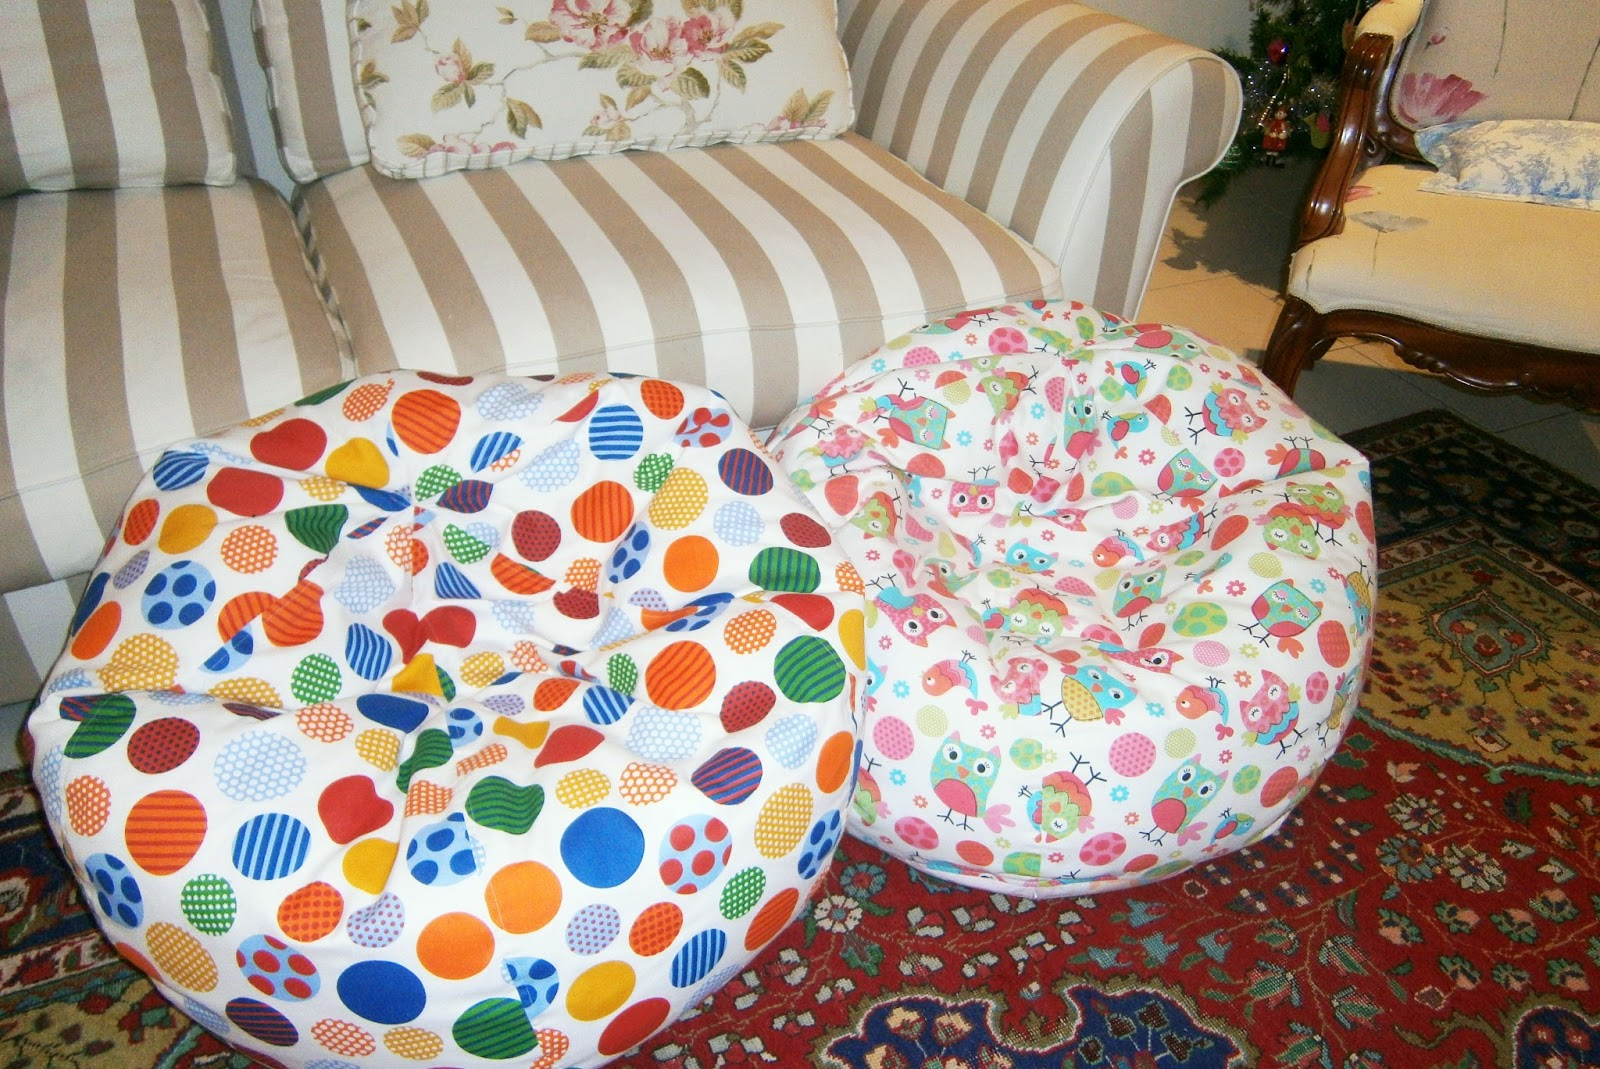 How to make bean bag chairs - I Ts Not Hard To Sew A Beanbag Pretty Basic Sewing Really So Even If You Don T Have Much Experience I Think You Will Be Ok With This